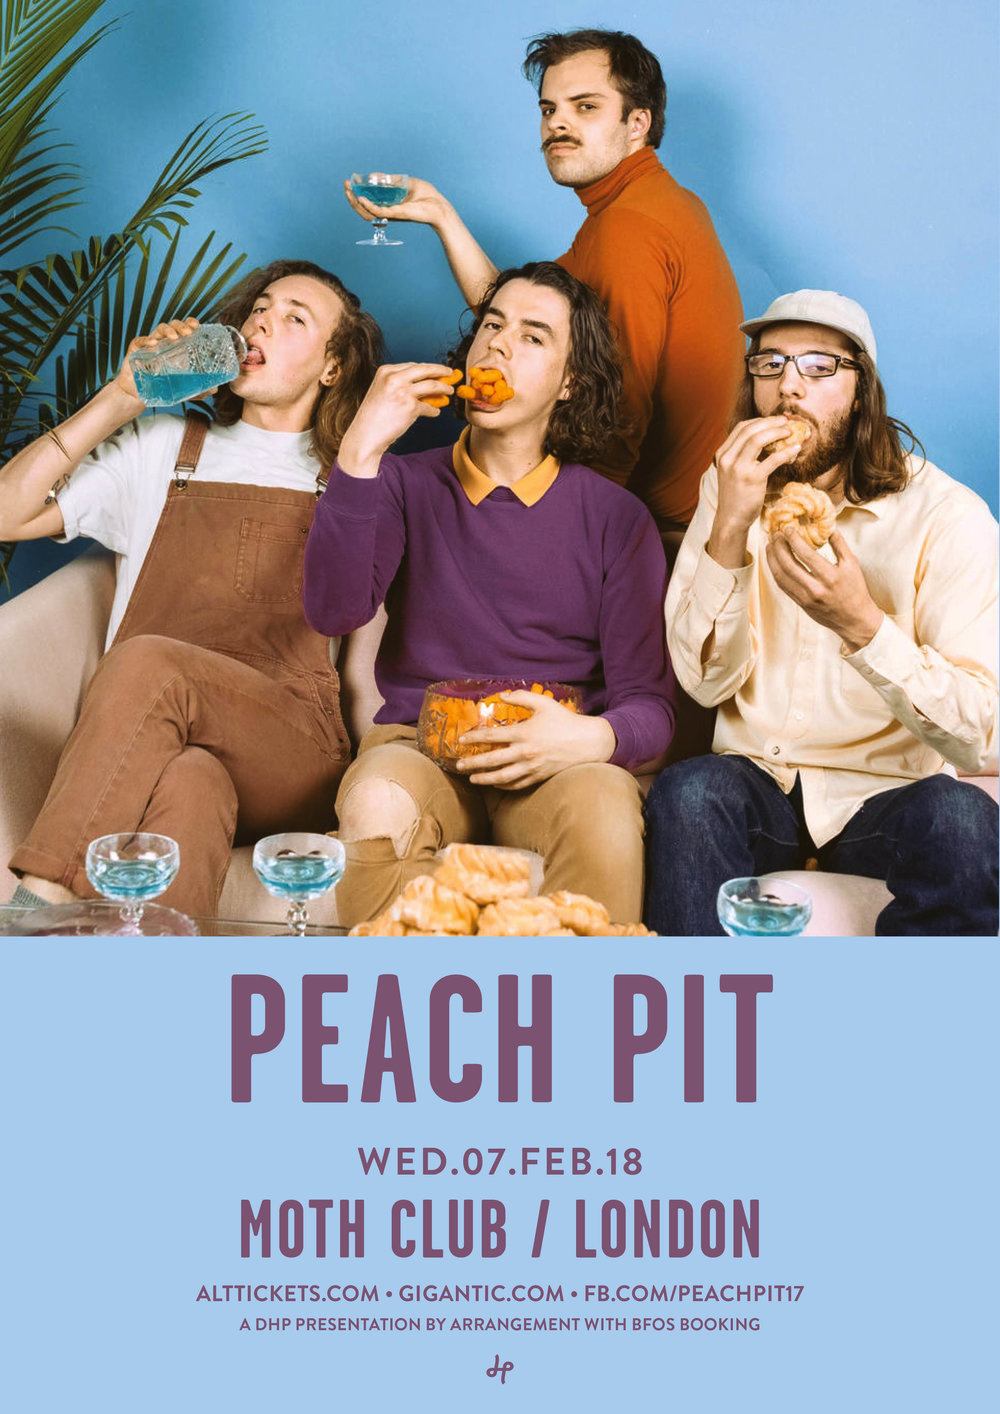 peach_pit_2018_london.jpg